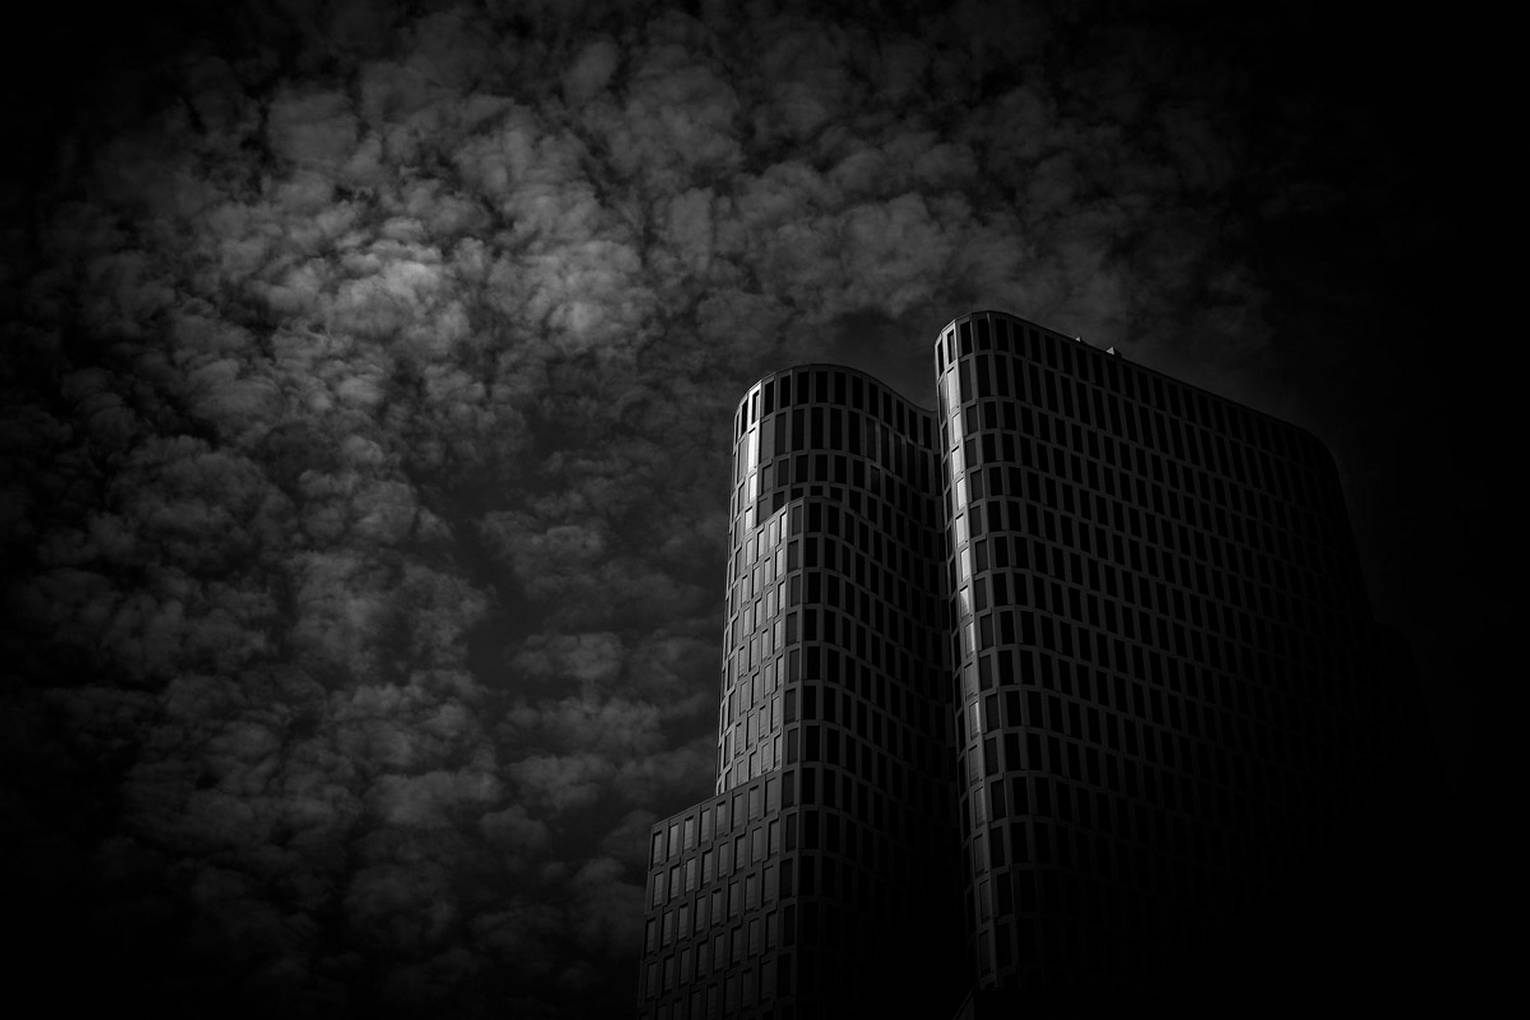 berlin, black and white, architecture, fine art photography, thomas menk, photography,